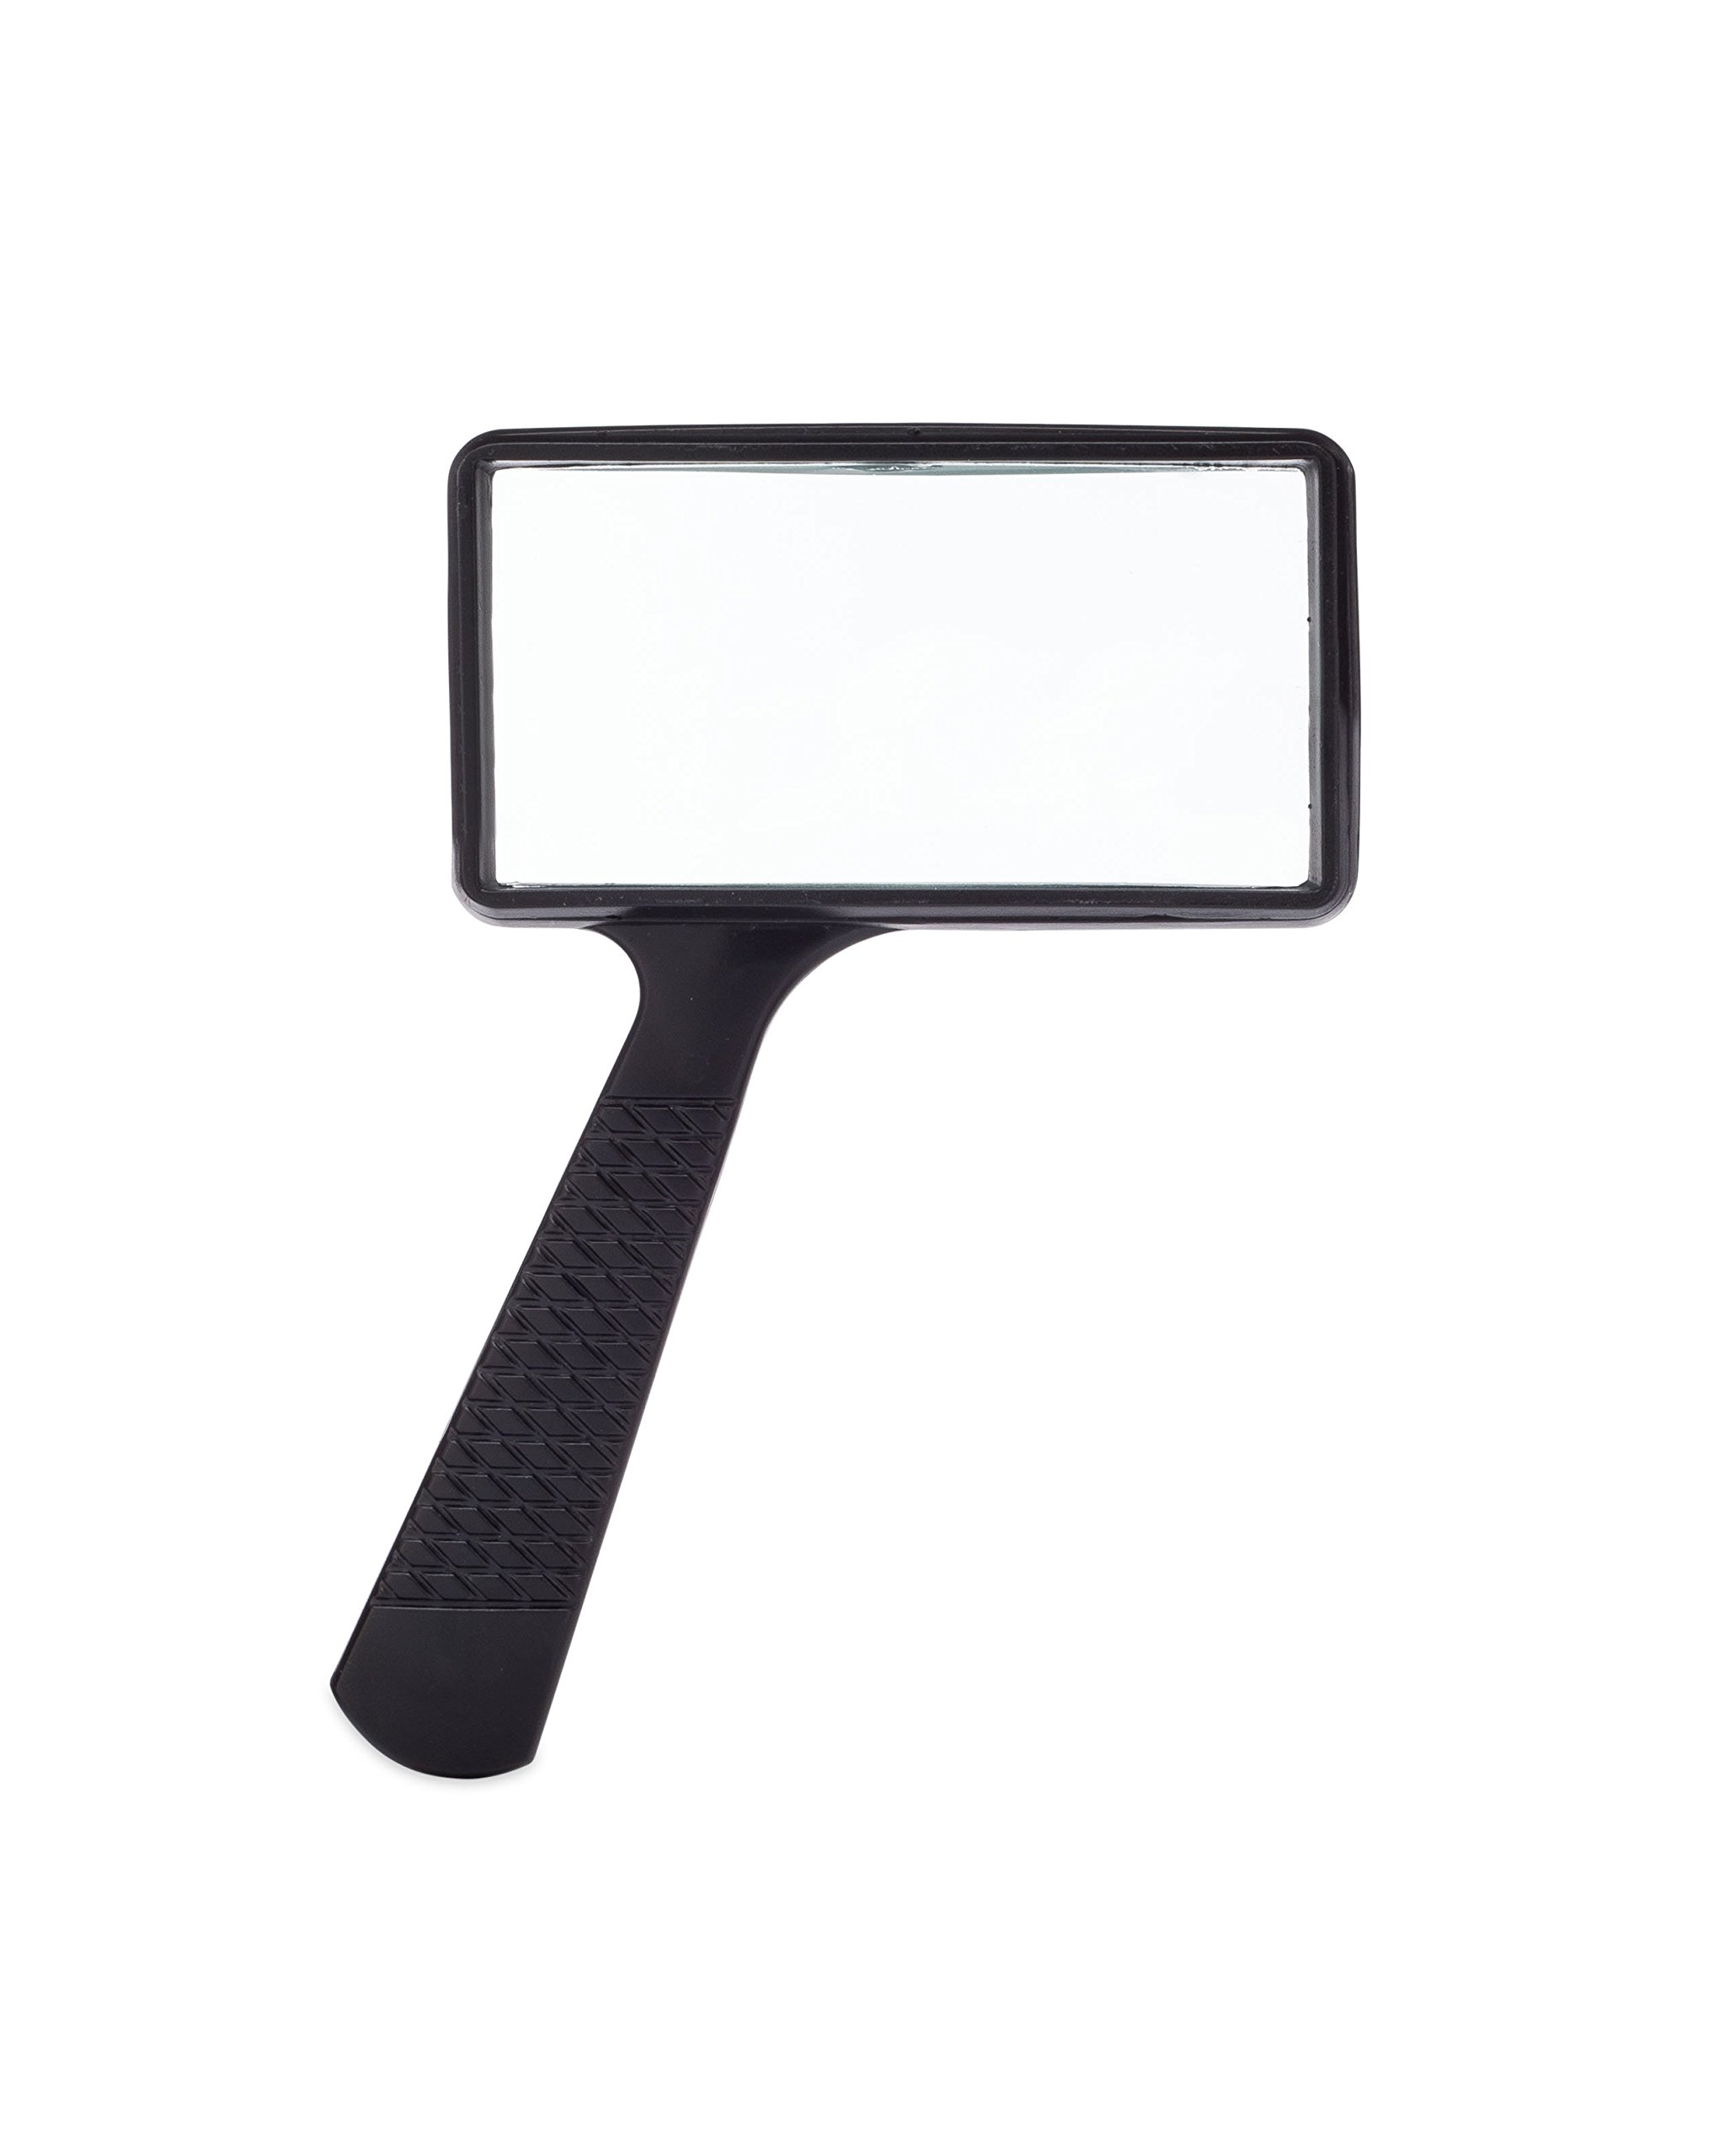 Jumbo Rectangular Handheld Magnifying Glass (3X Magnification) – Scratch Resistant GLASS Lens - Large Horizontal Viewing Area by MagnifyLabs